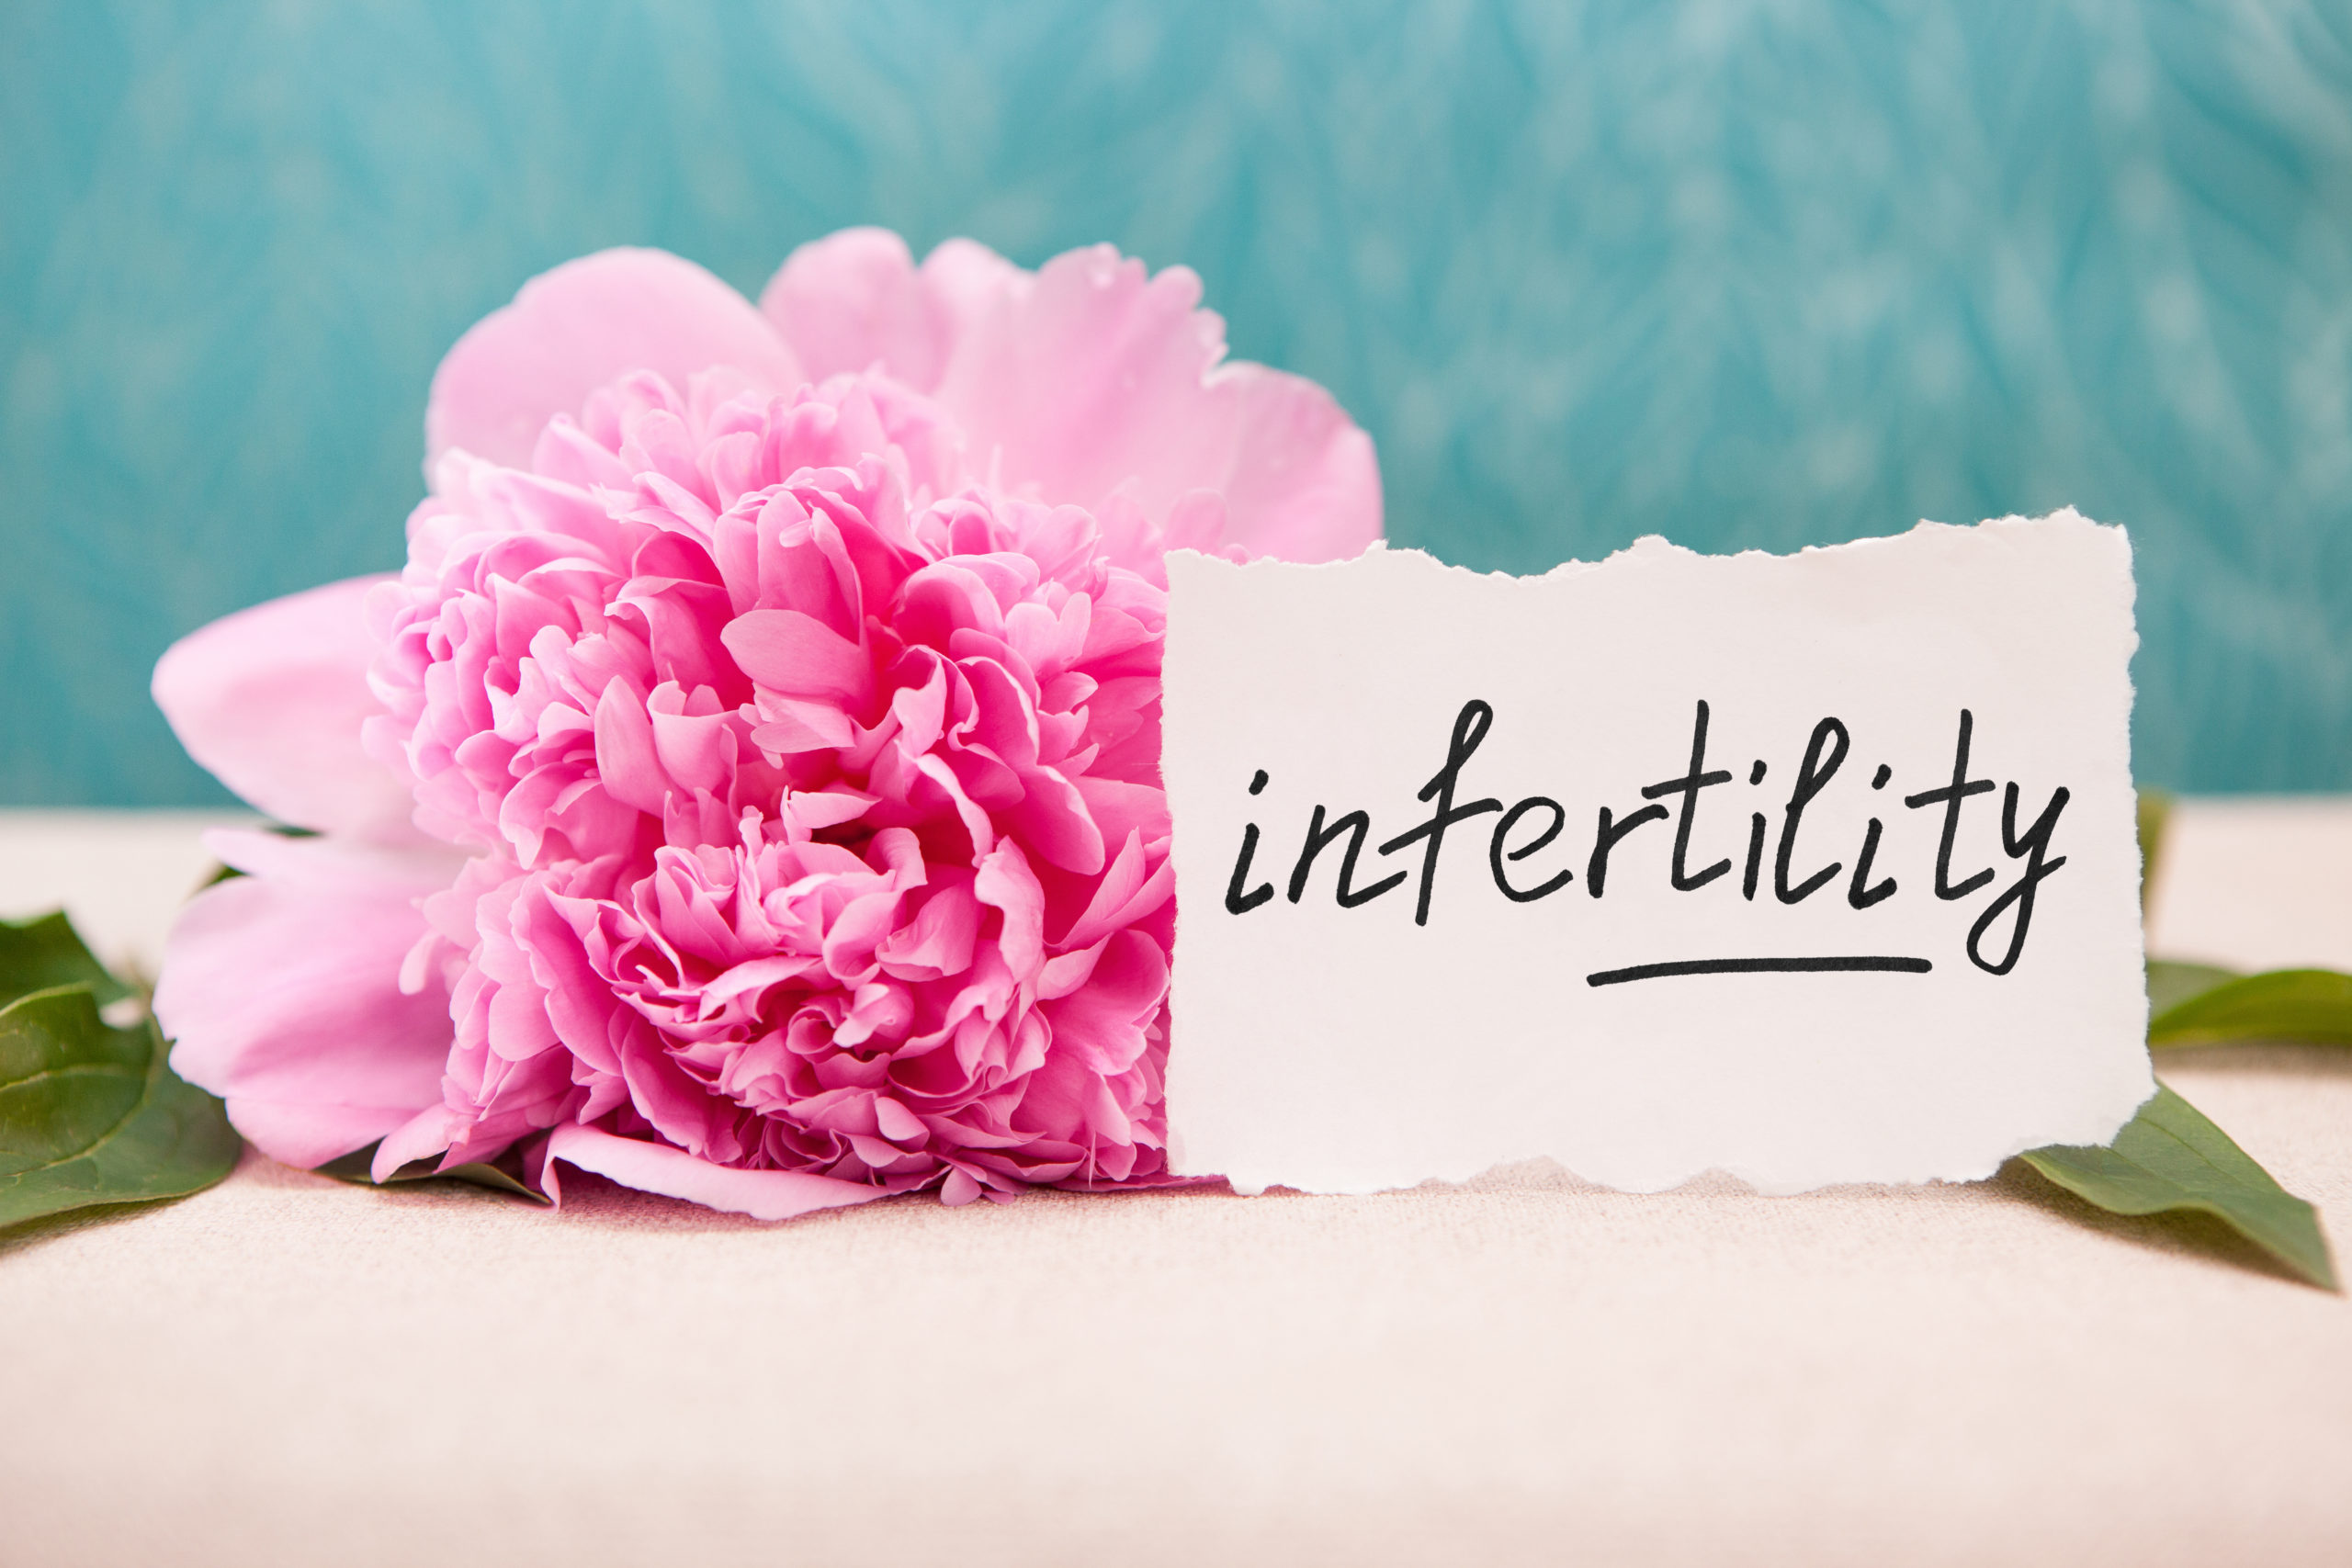 Bristol Infertility